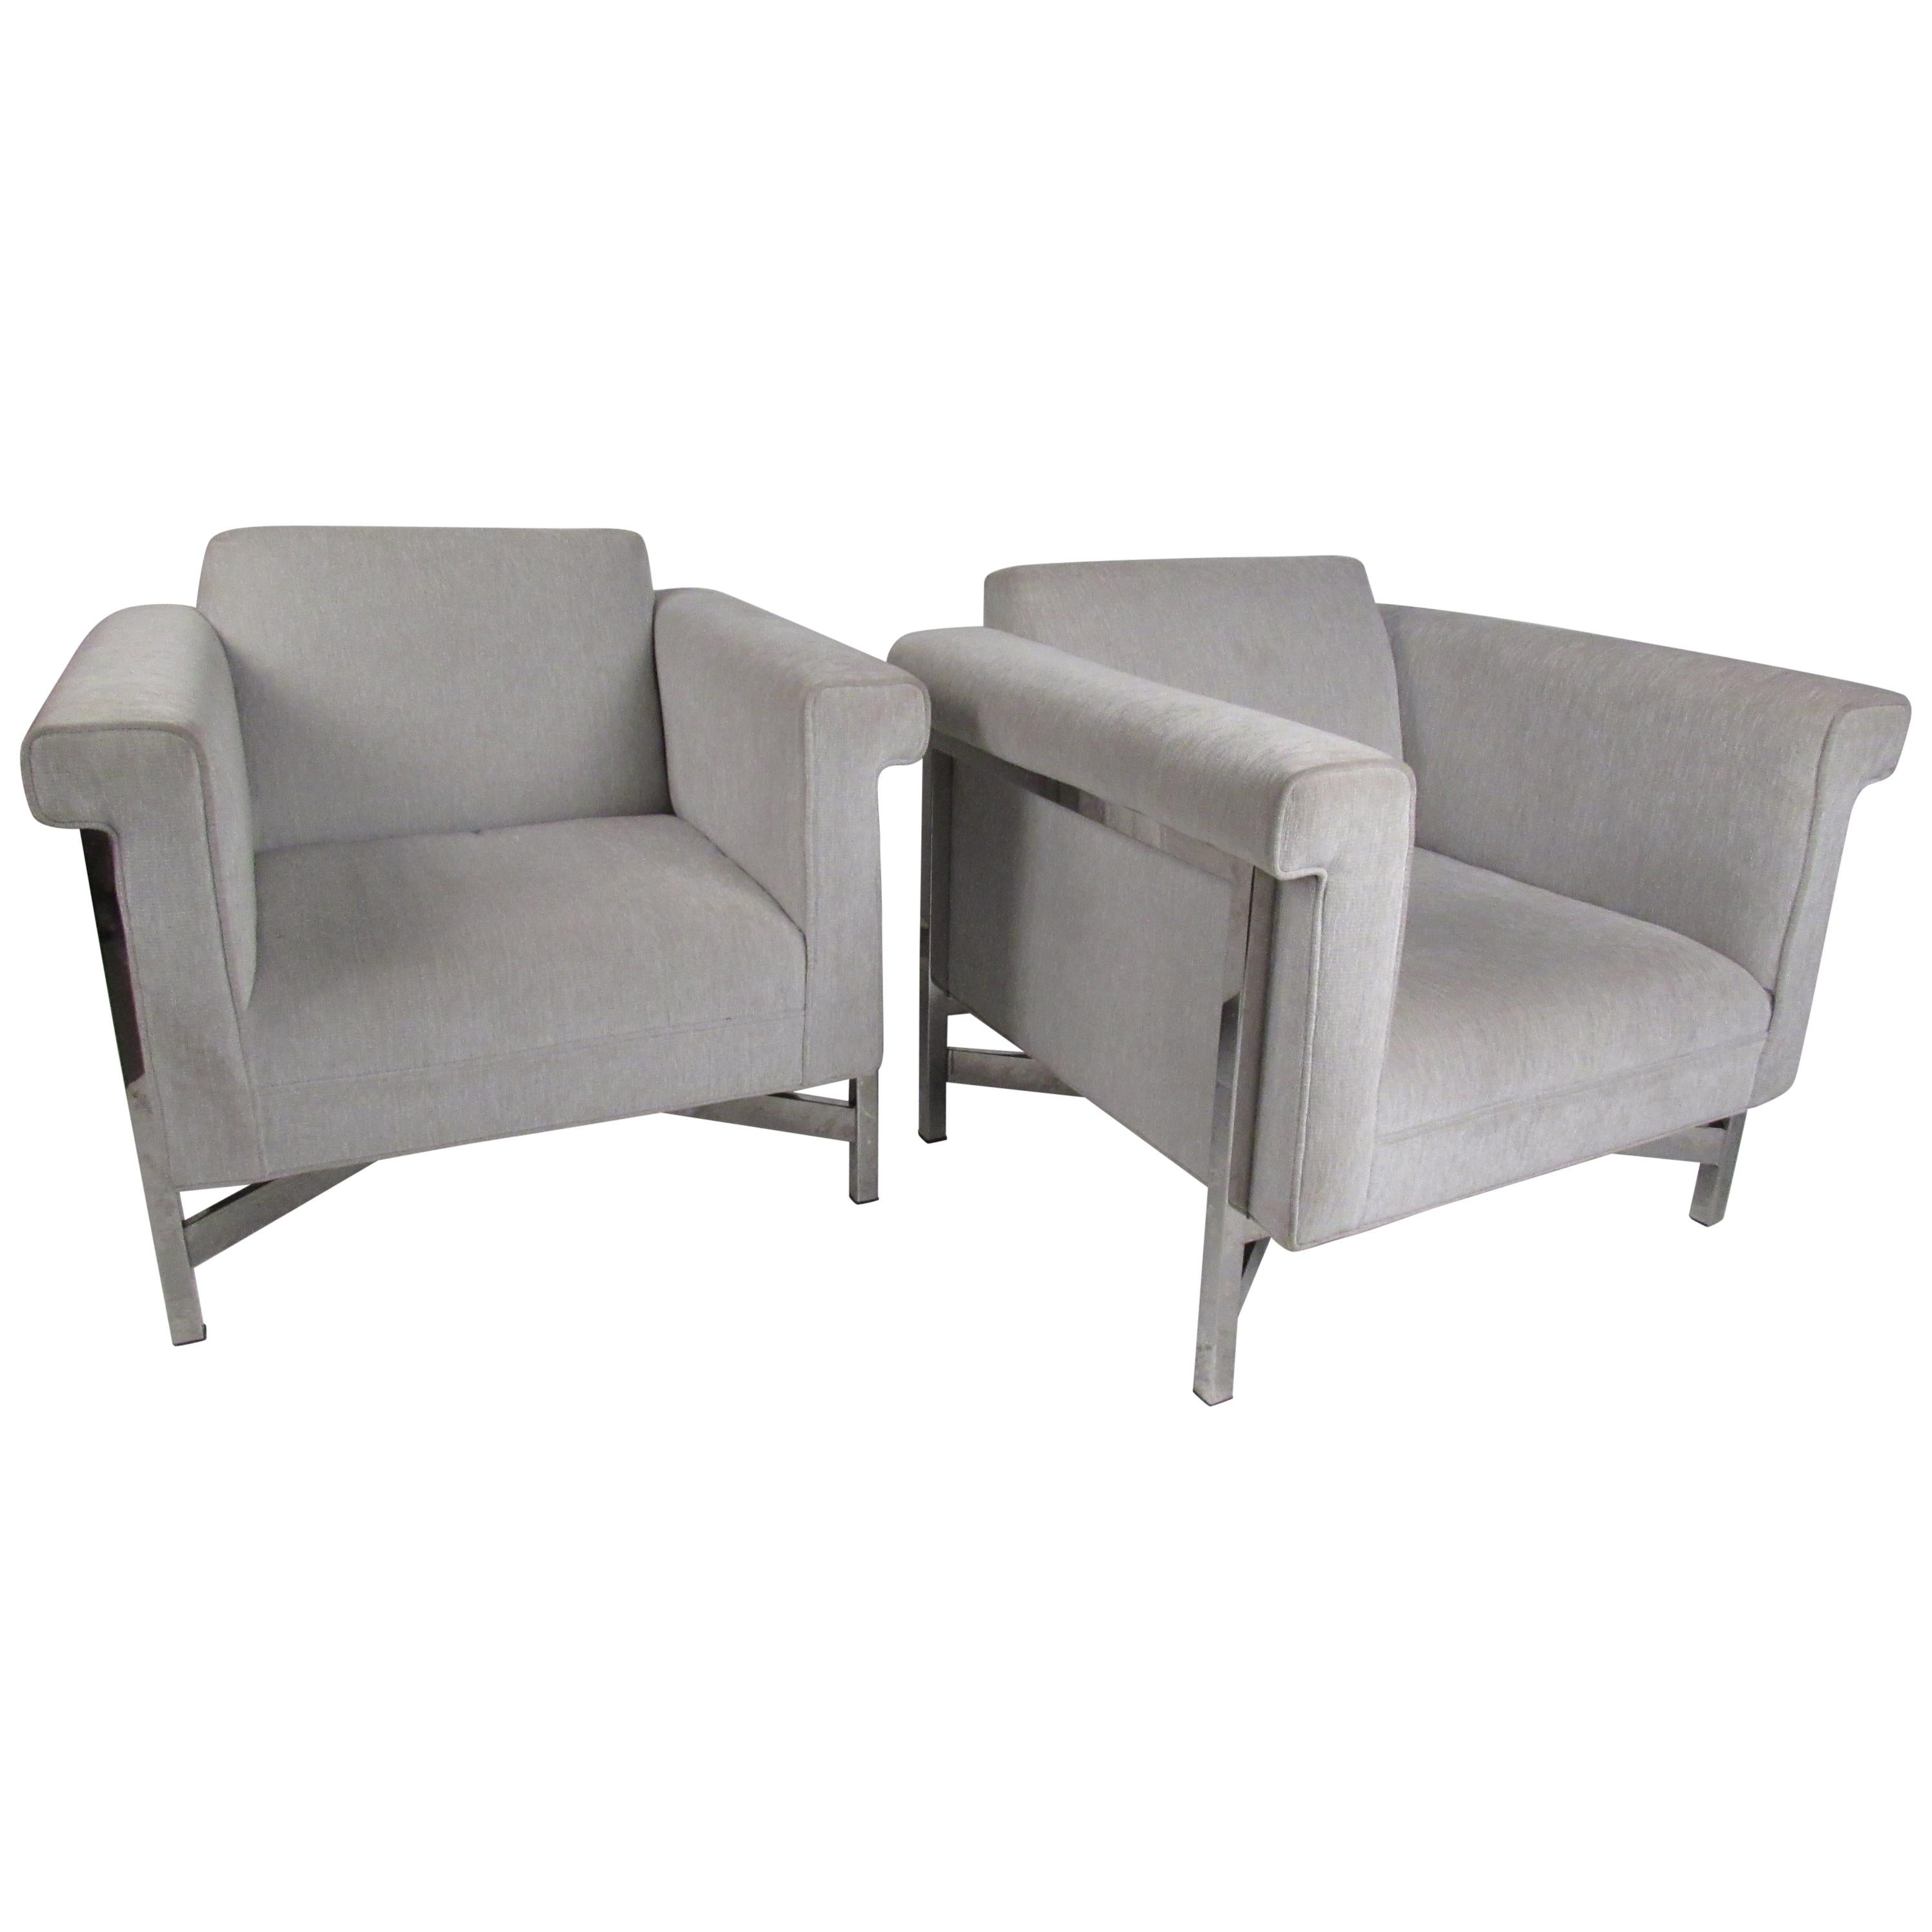 Pair of Contemporary Modern Upholstered Lounge Chairs